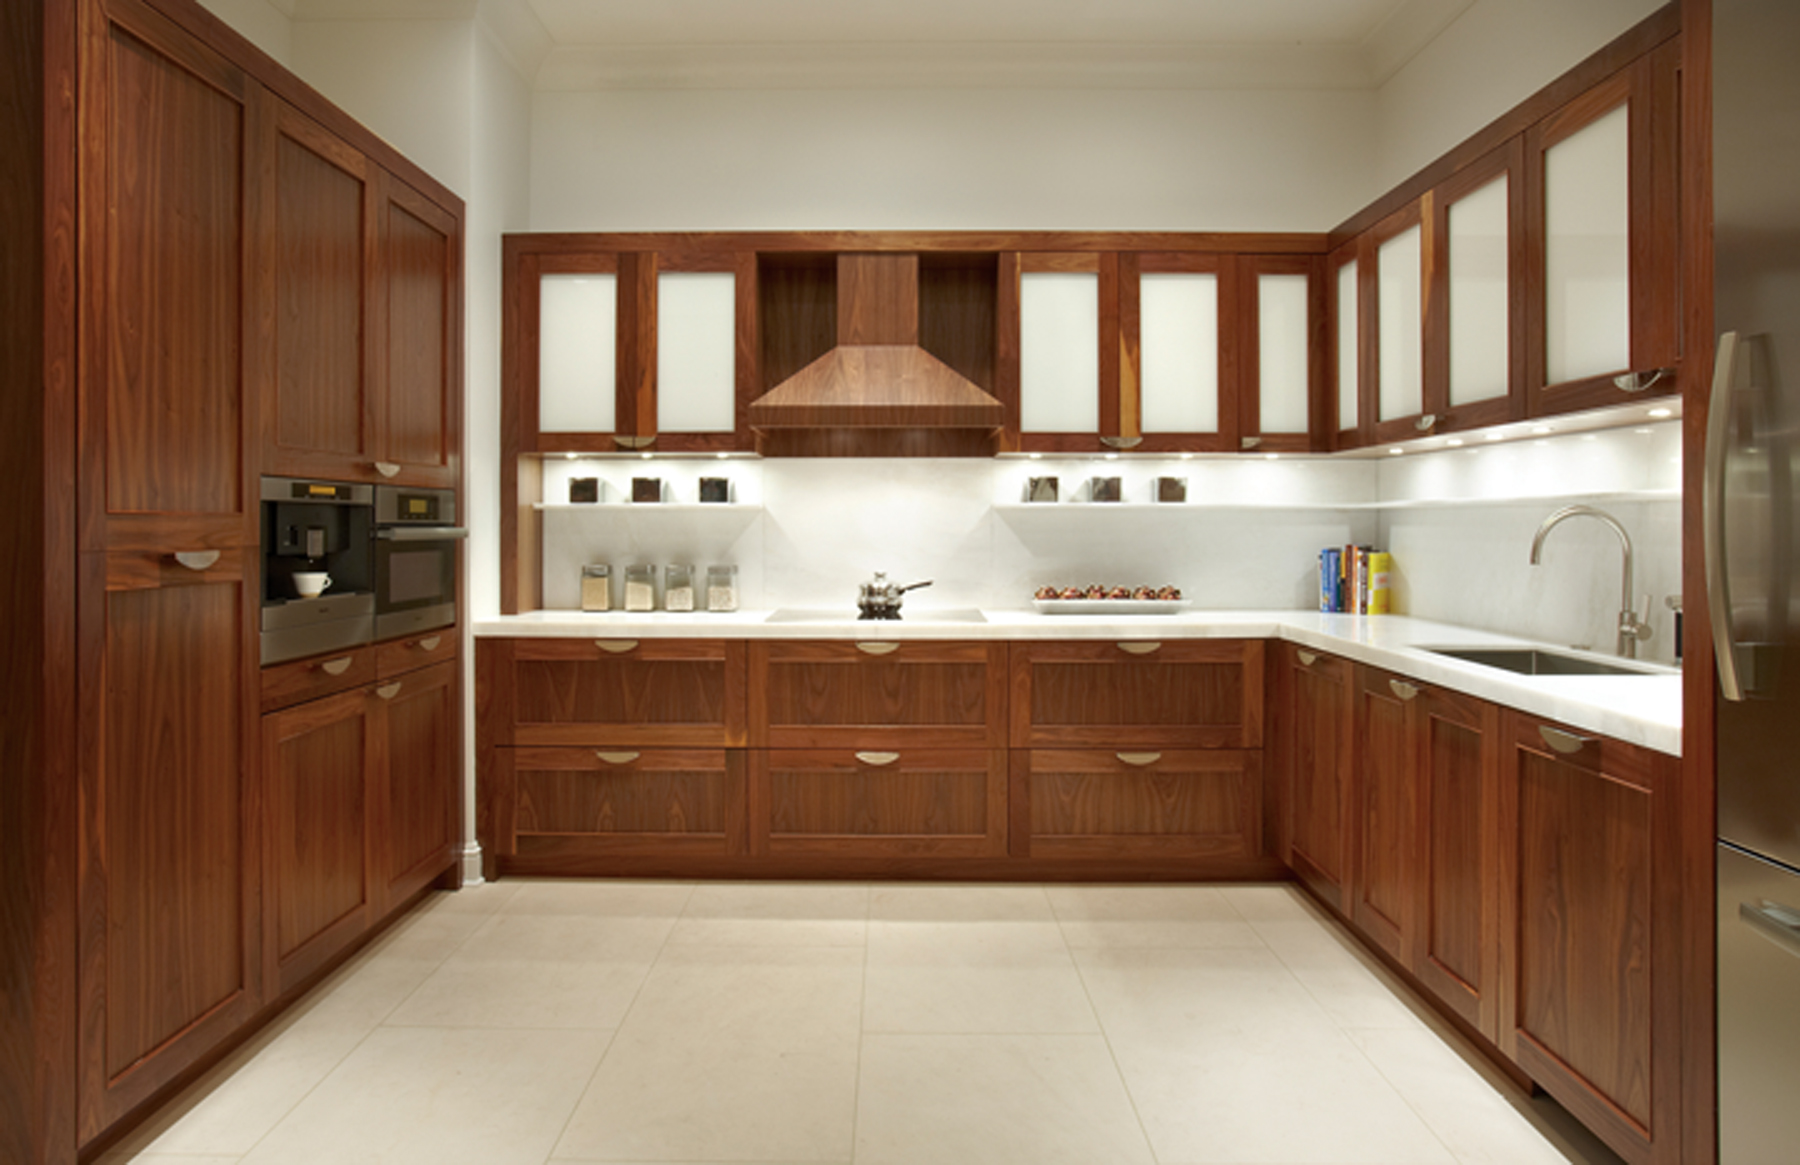 Kitchen Cabinet Design 28+ [ kitchen cabinetss ] | kitchen cabinet d amp s furniture,home